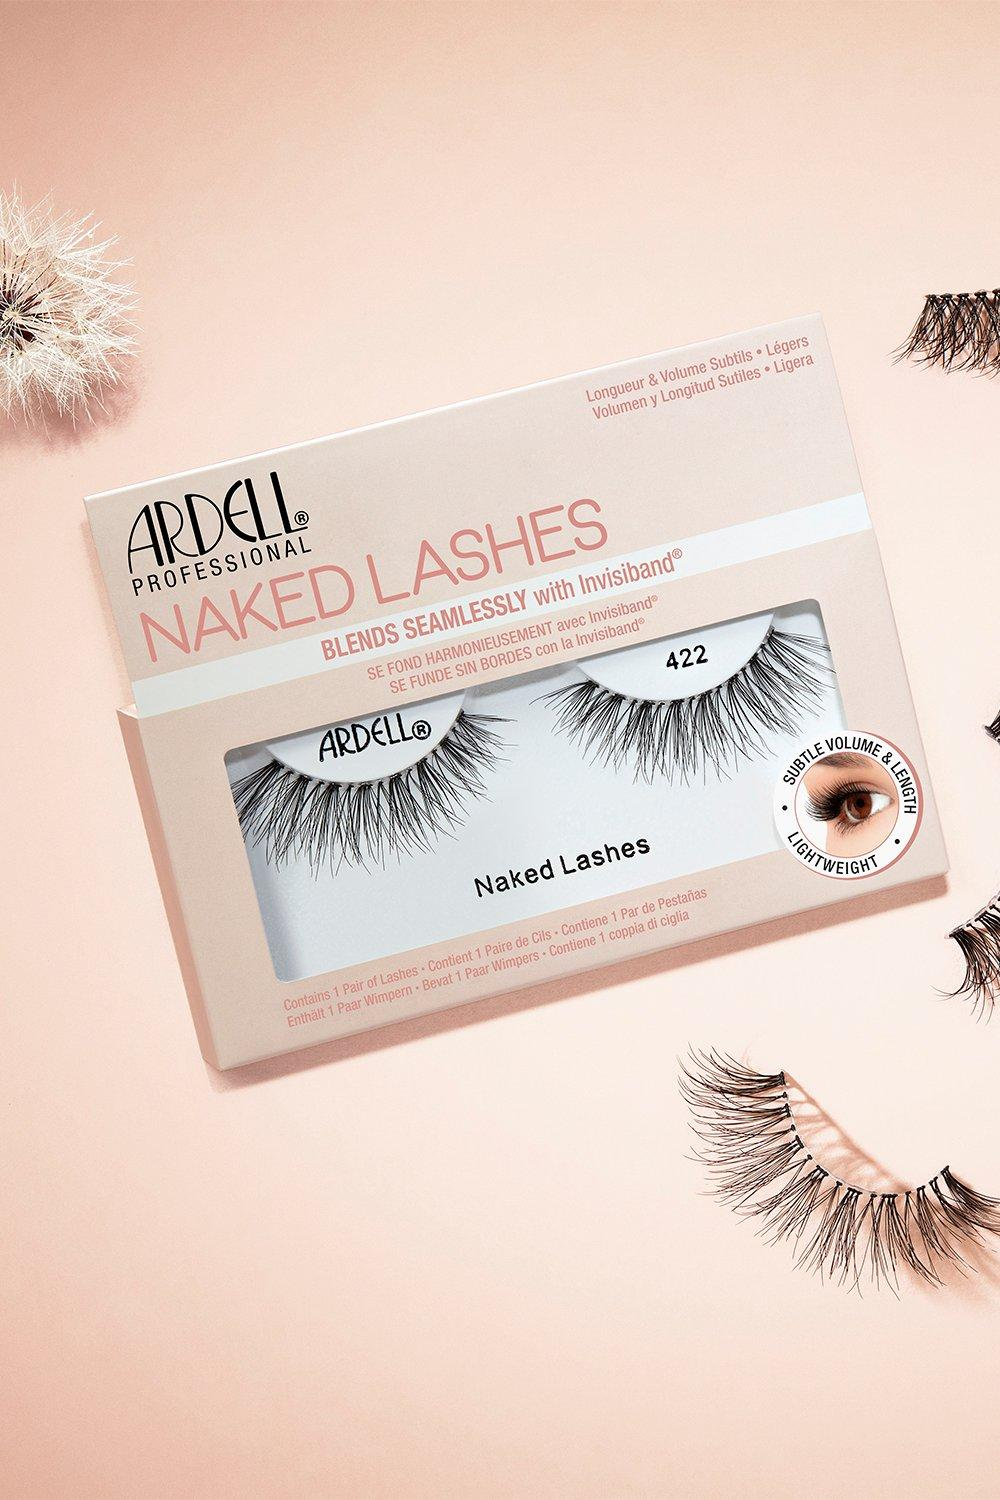 Ardell Womens Ardell Naked Lashes 422 - Black - One Size, Black